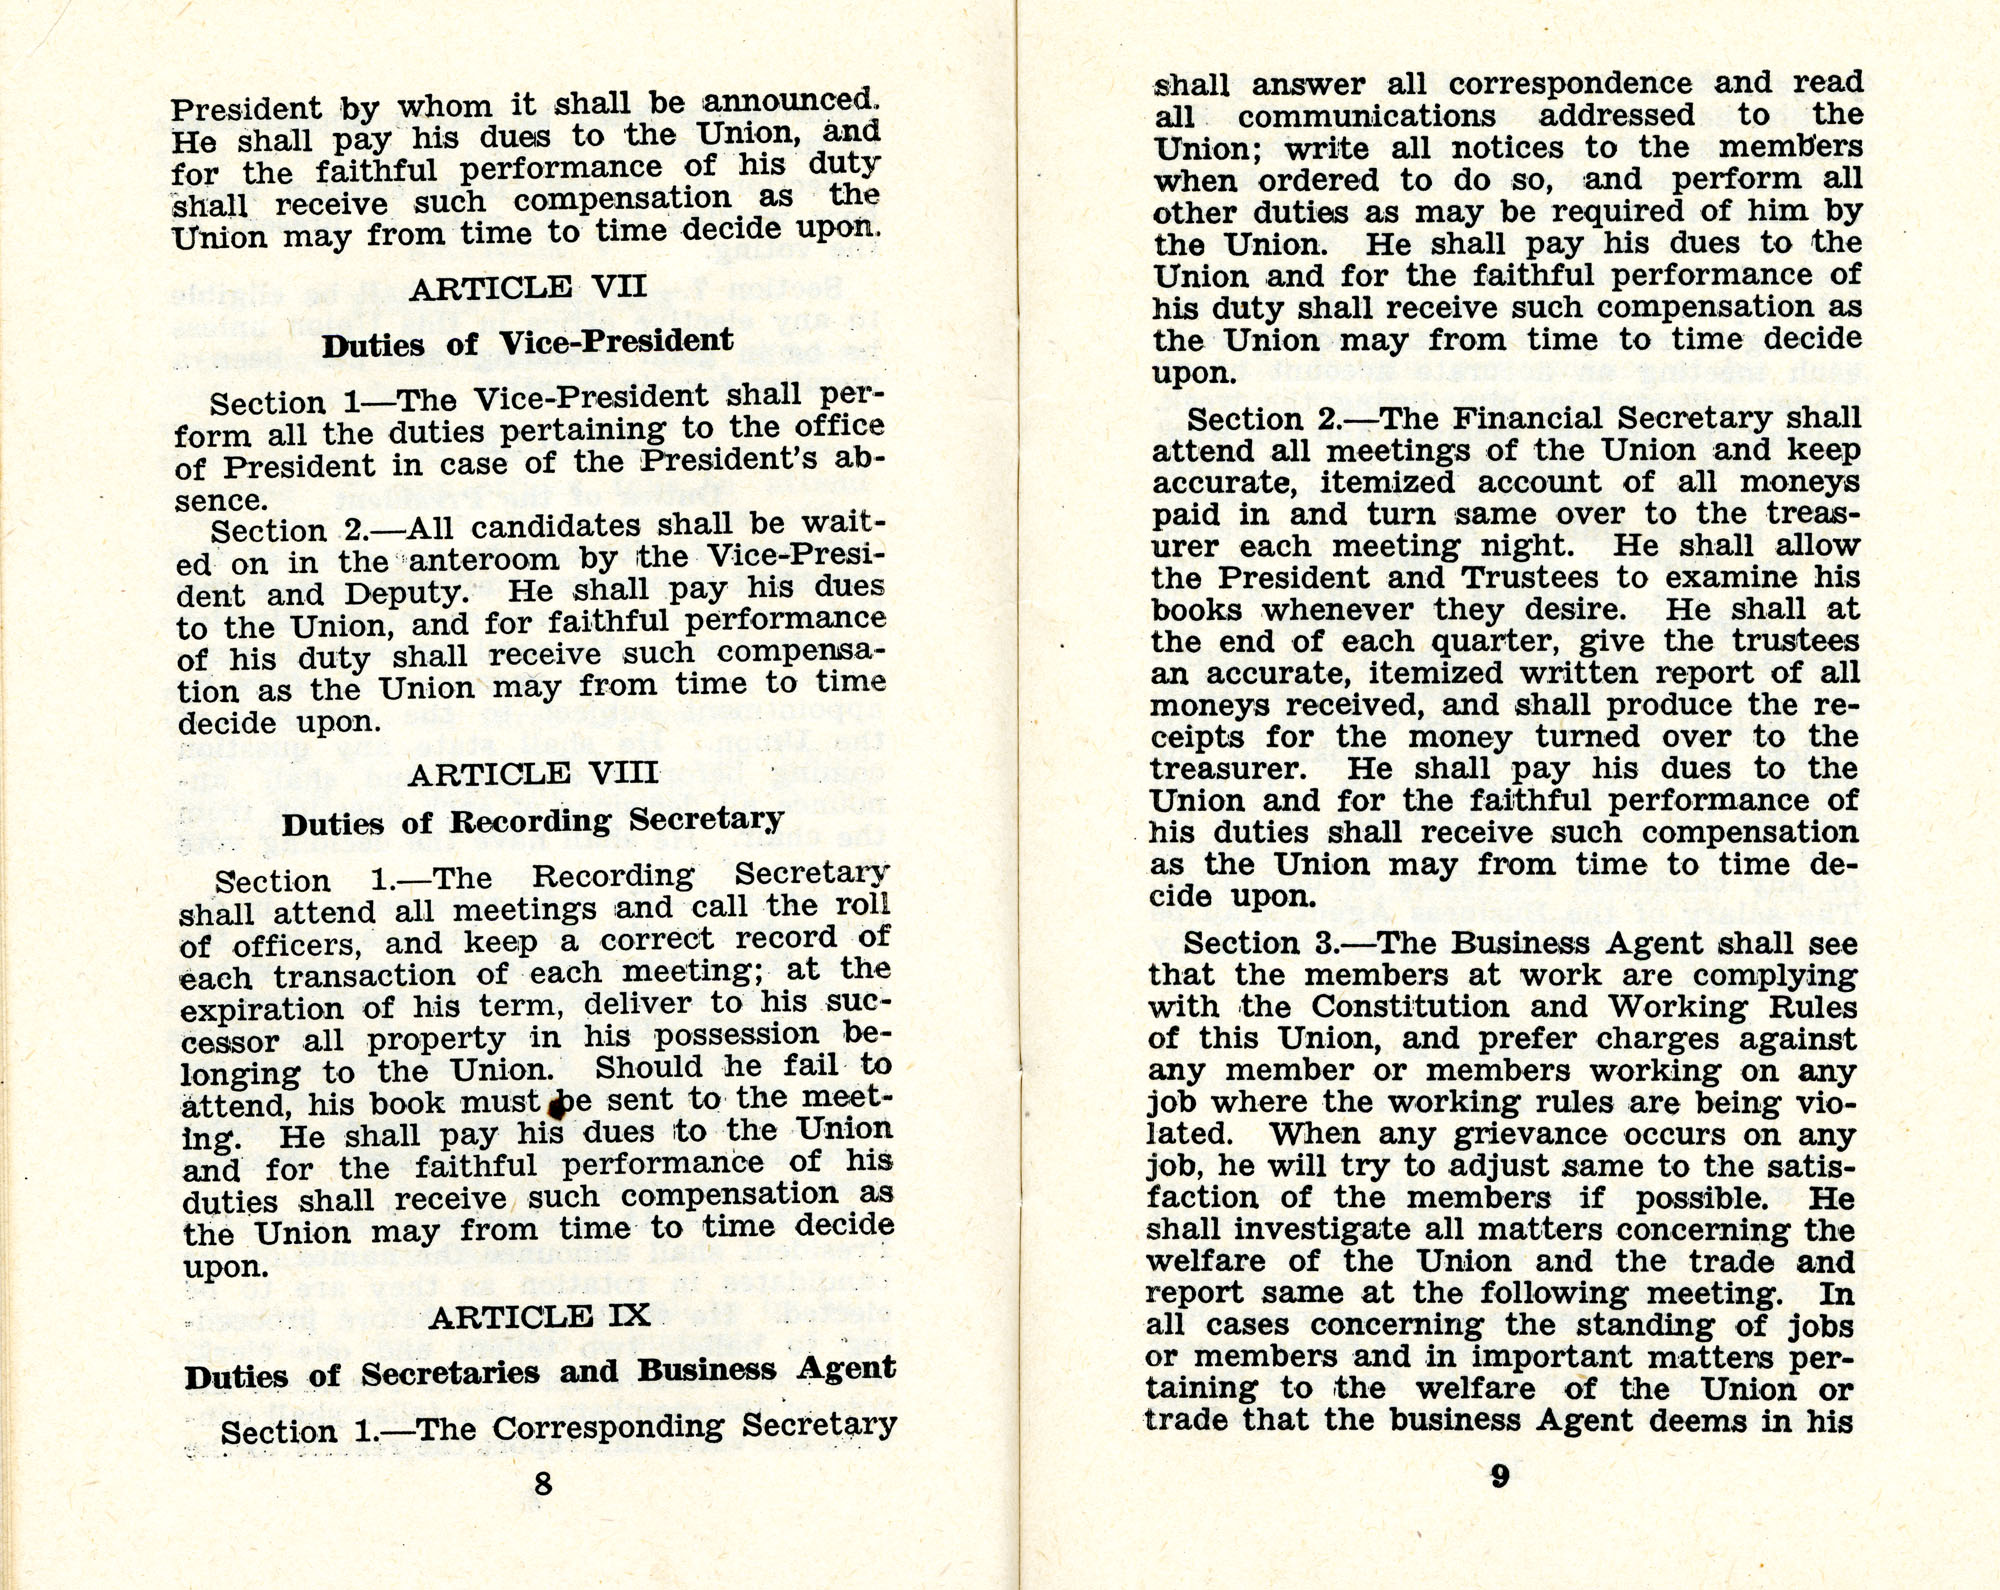 Constitution and by-laws of unions no.1 and 10, Page 5